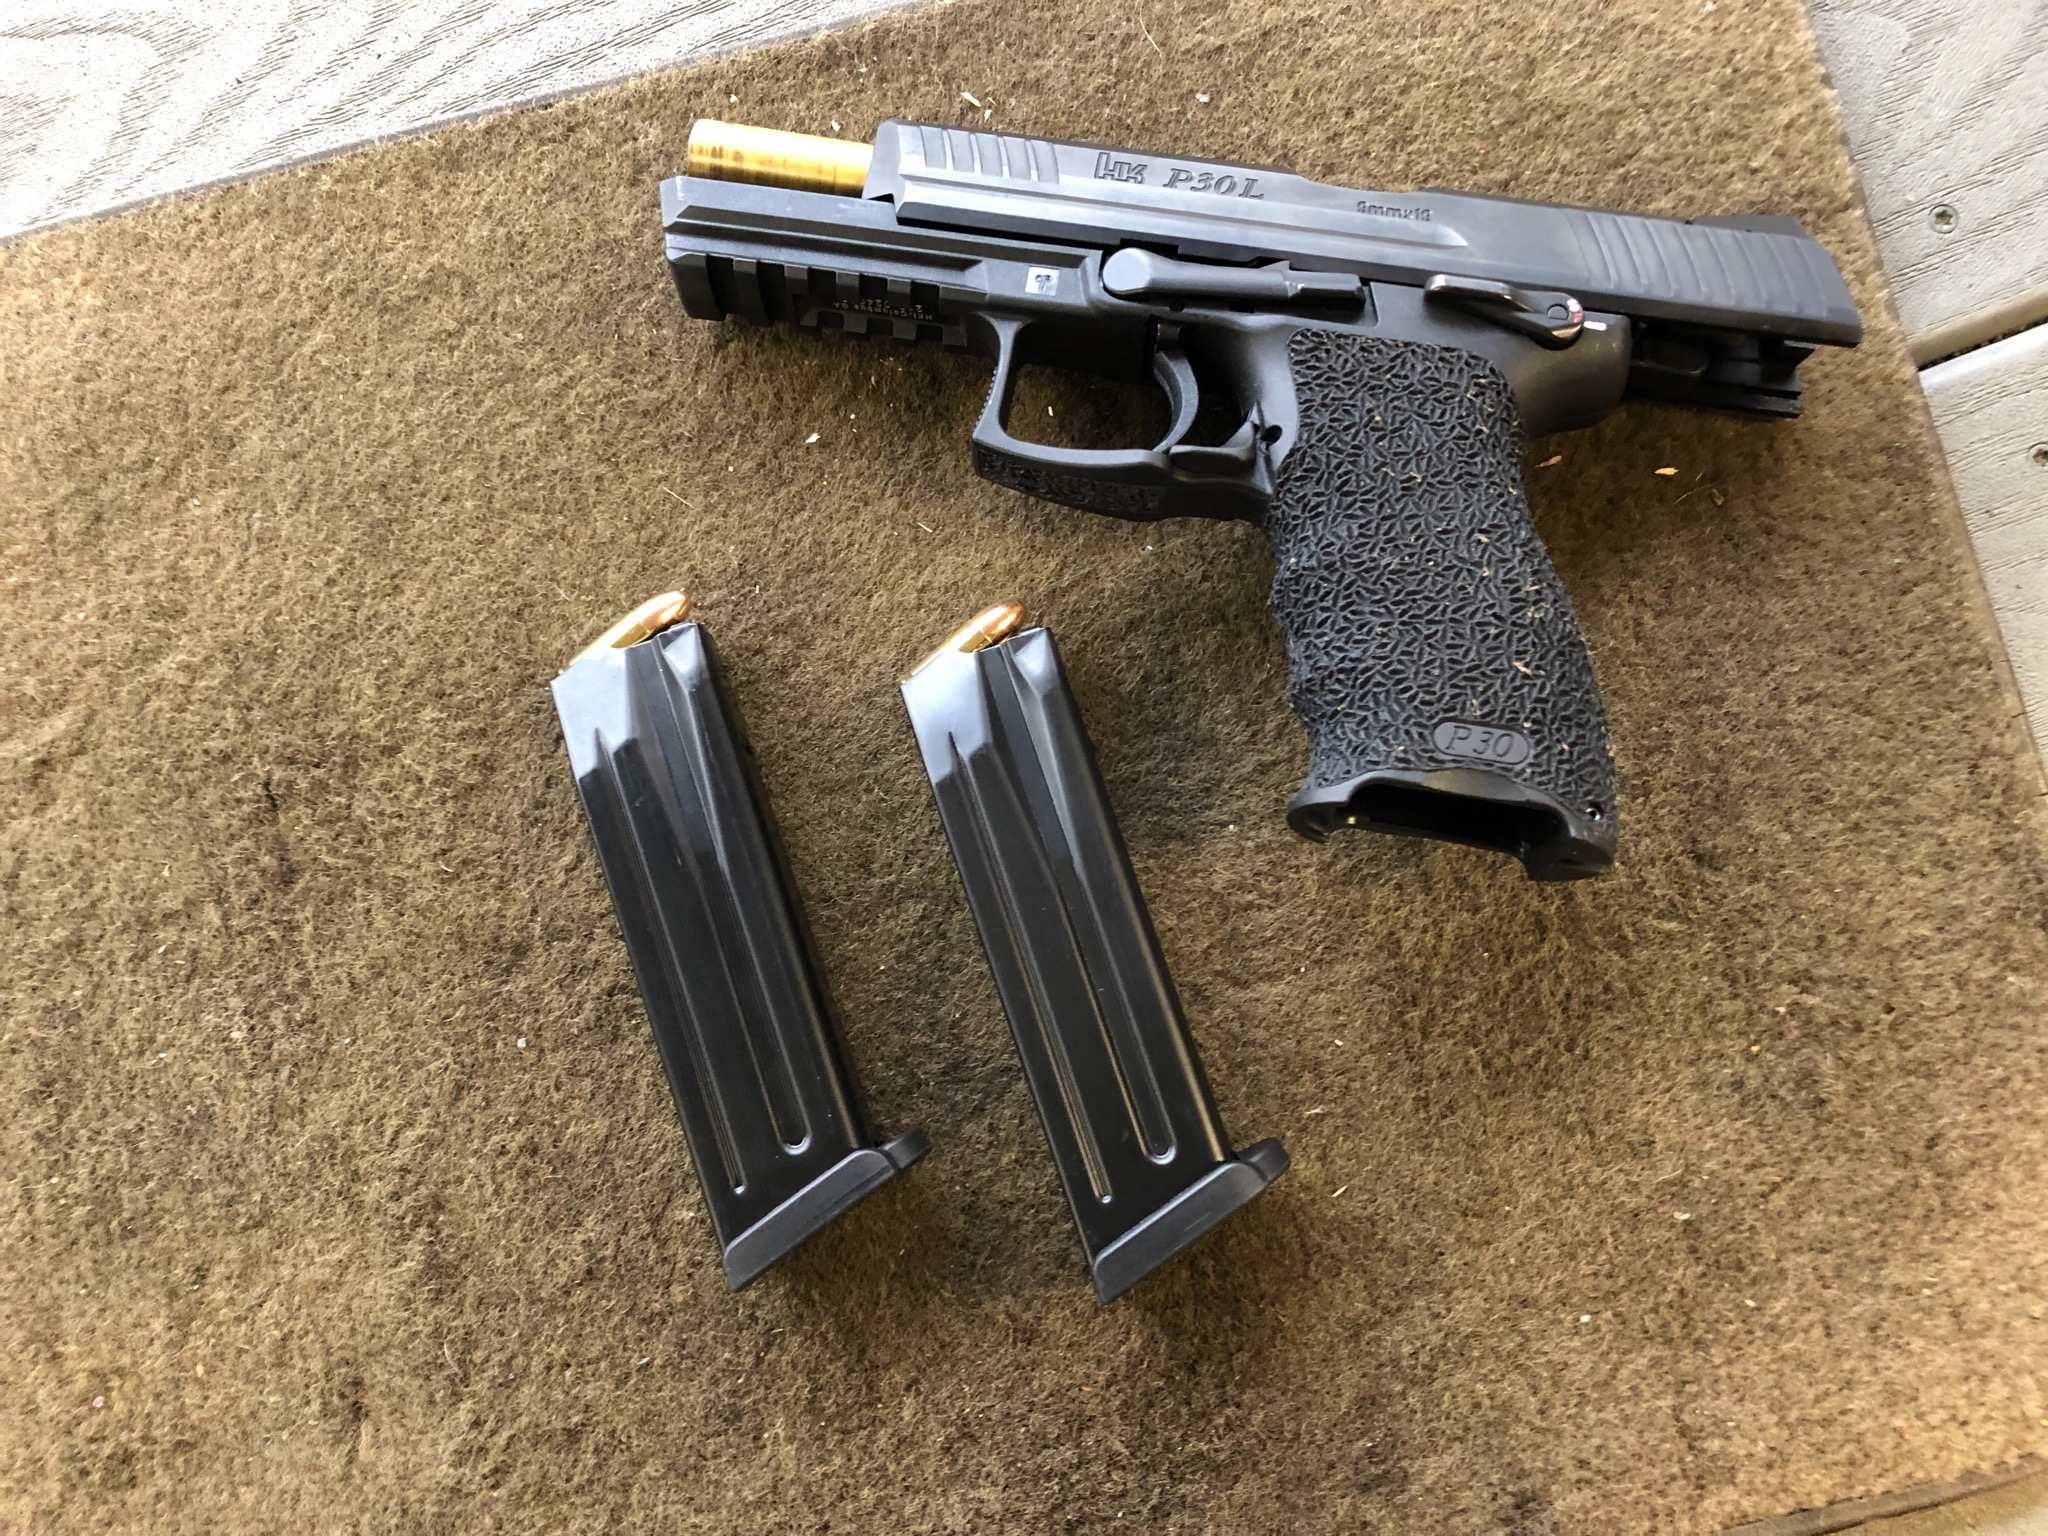 What did you do to your Heckler & Koch pistol today?-612d93eb-ed9c-4157-b29a-76fb8230d8ed.jpeg